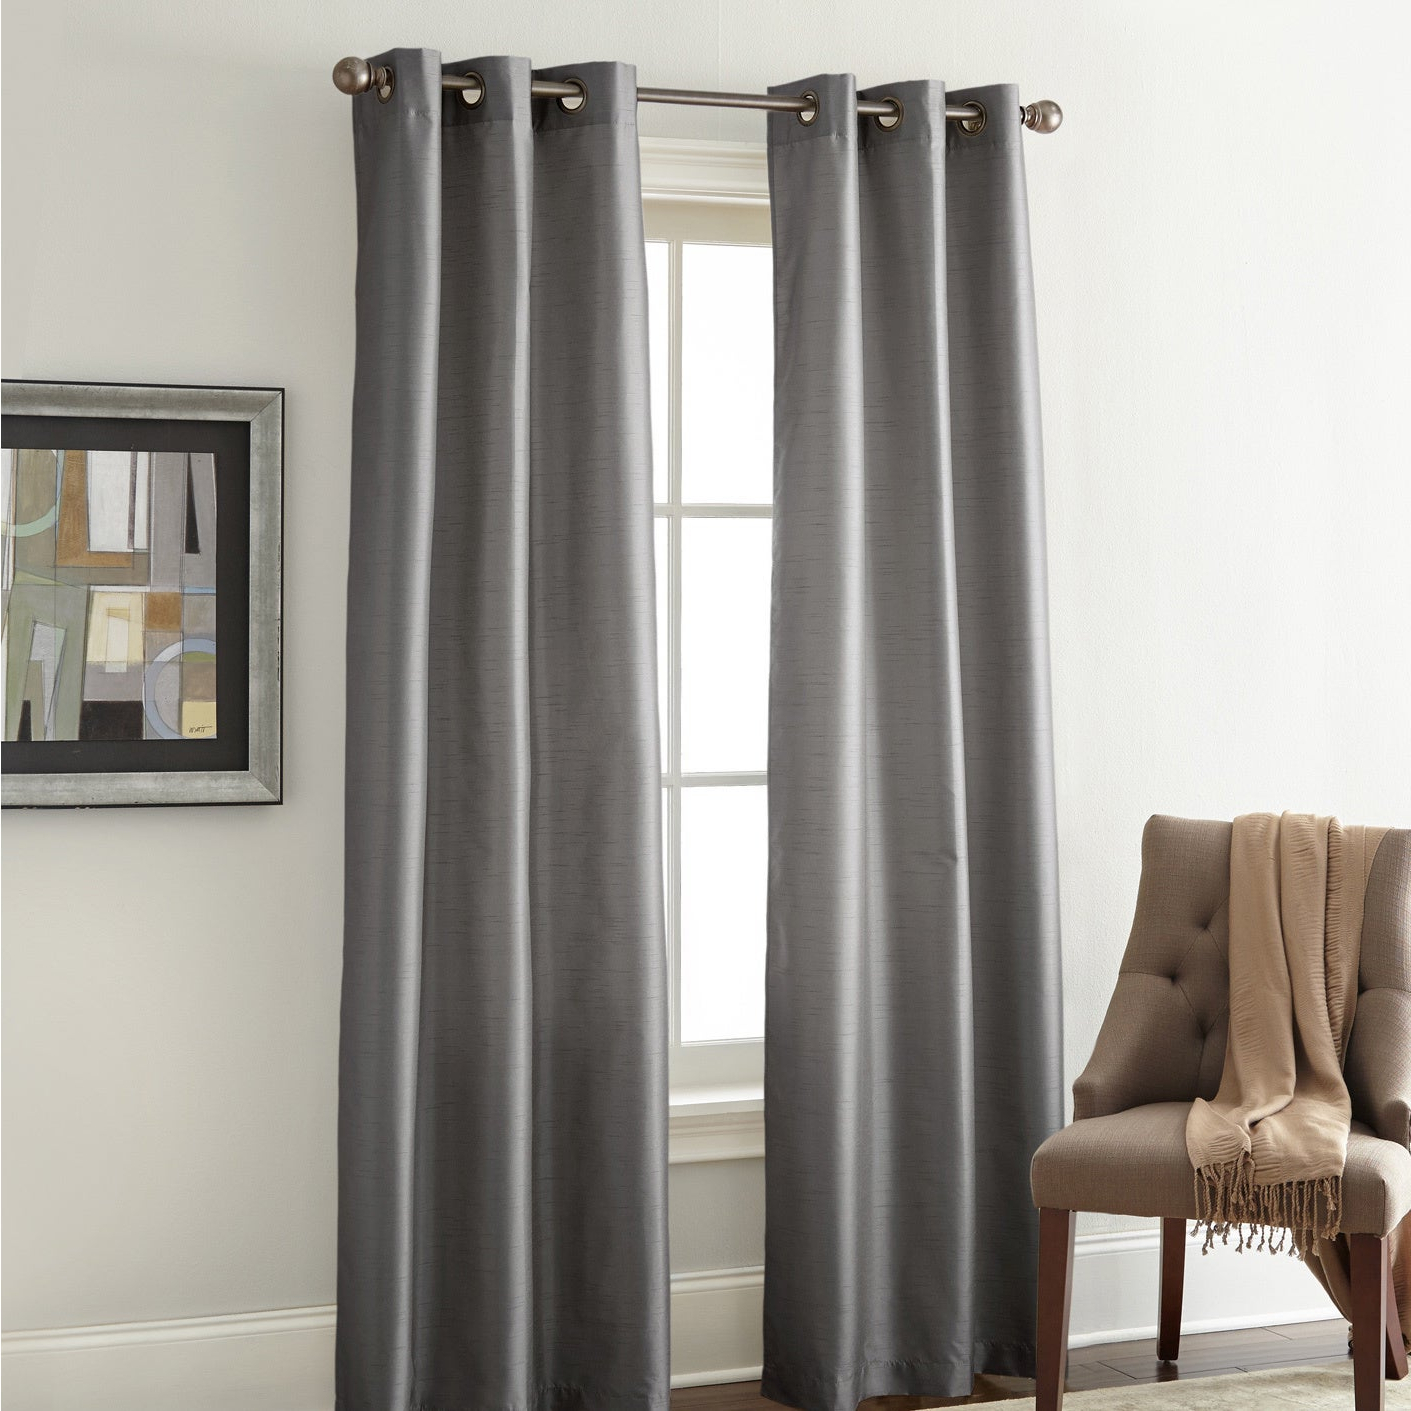 Amrapur Overseas Faux Silk Blackout Curtain Panel Pair For Best And Newest Overseas Faux Silk Blackout Curtain Panel Pairs (View 2 of 20)